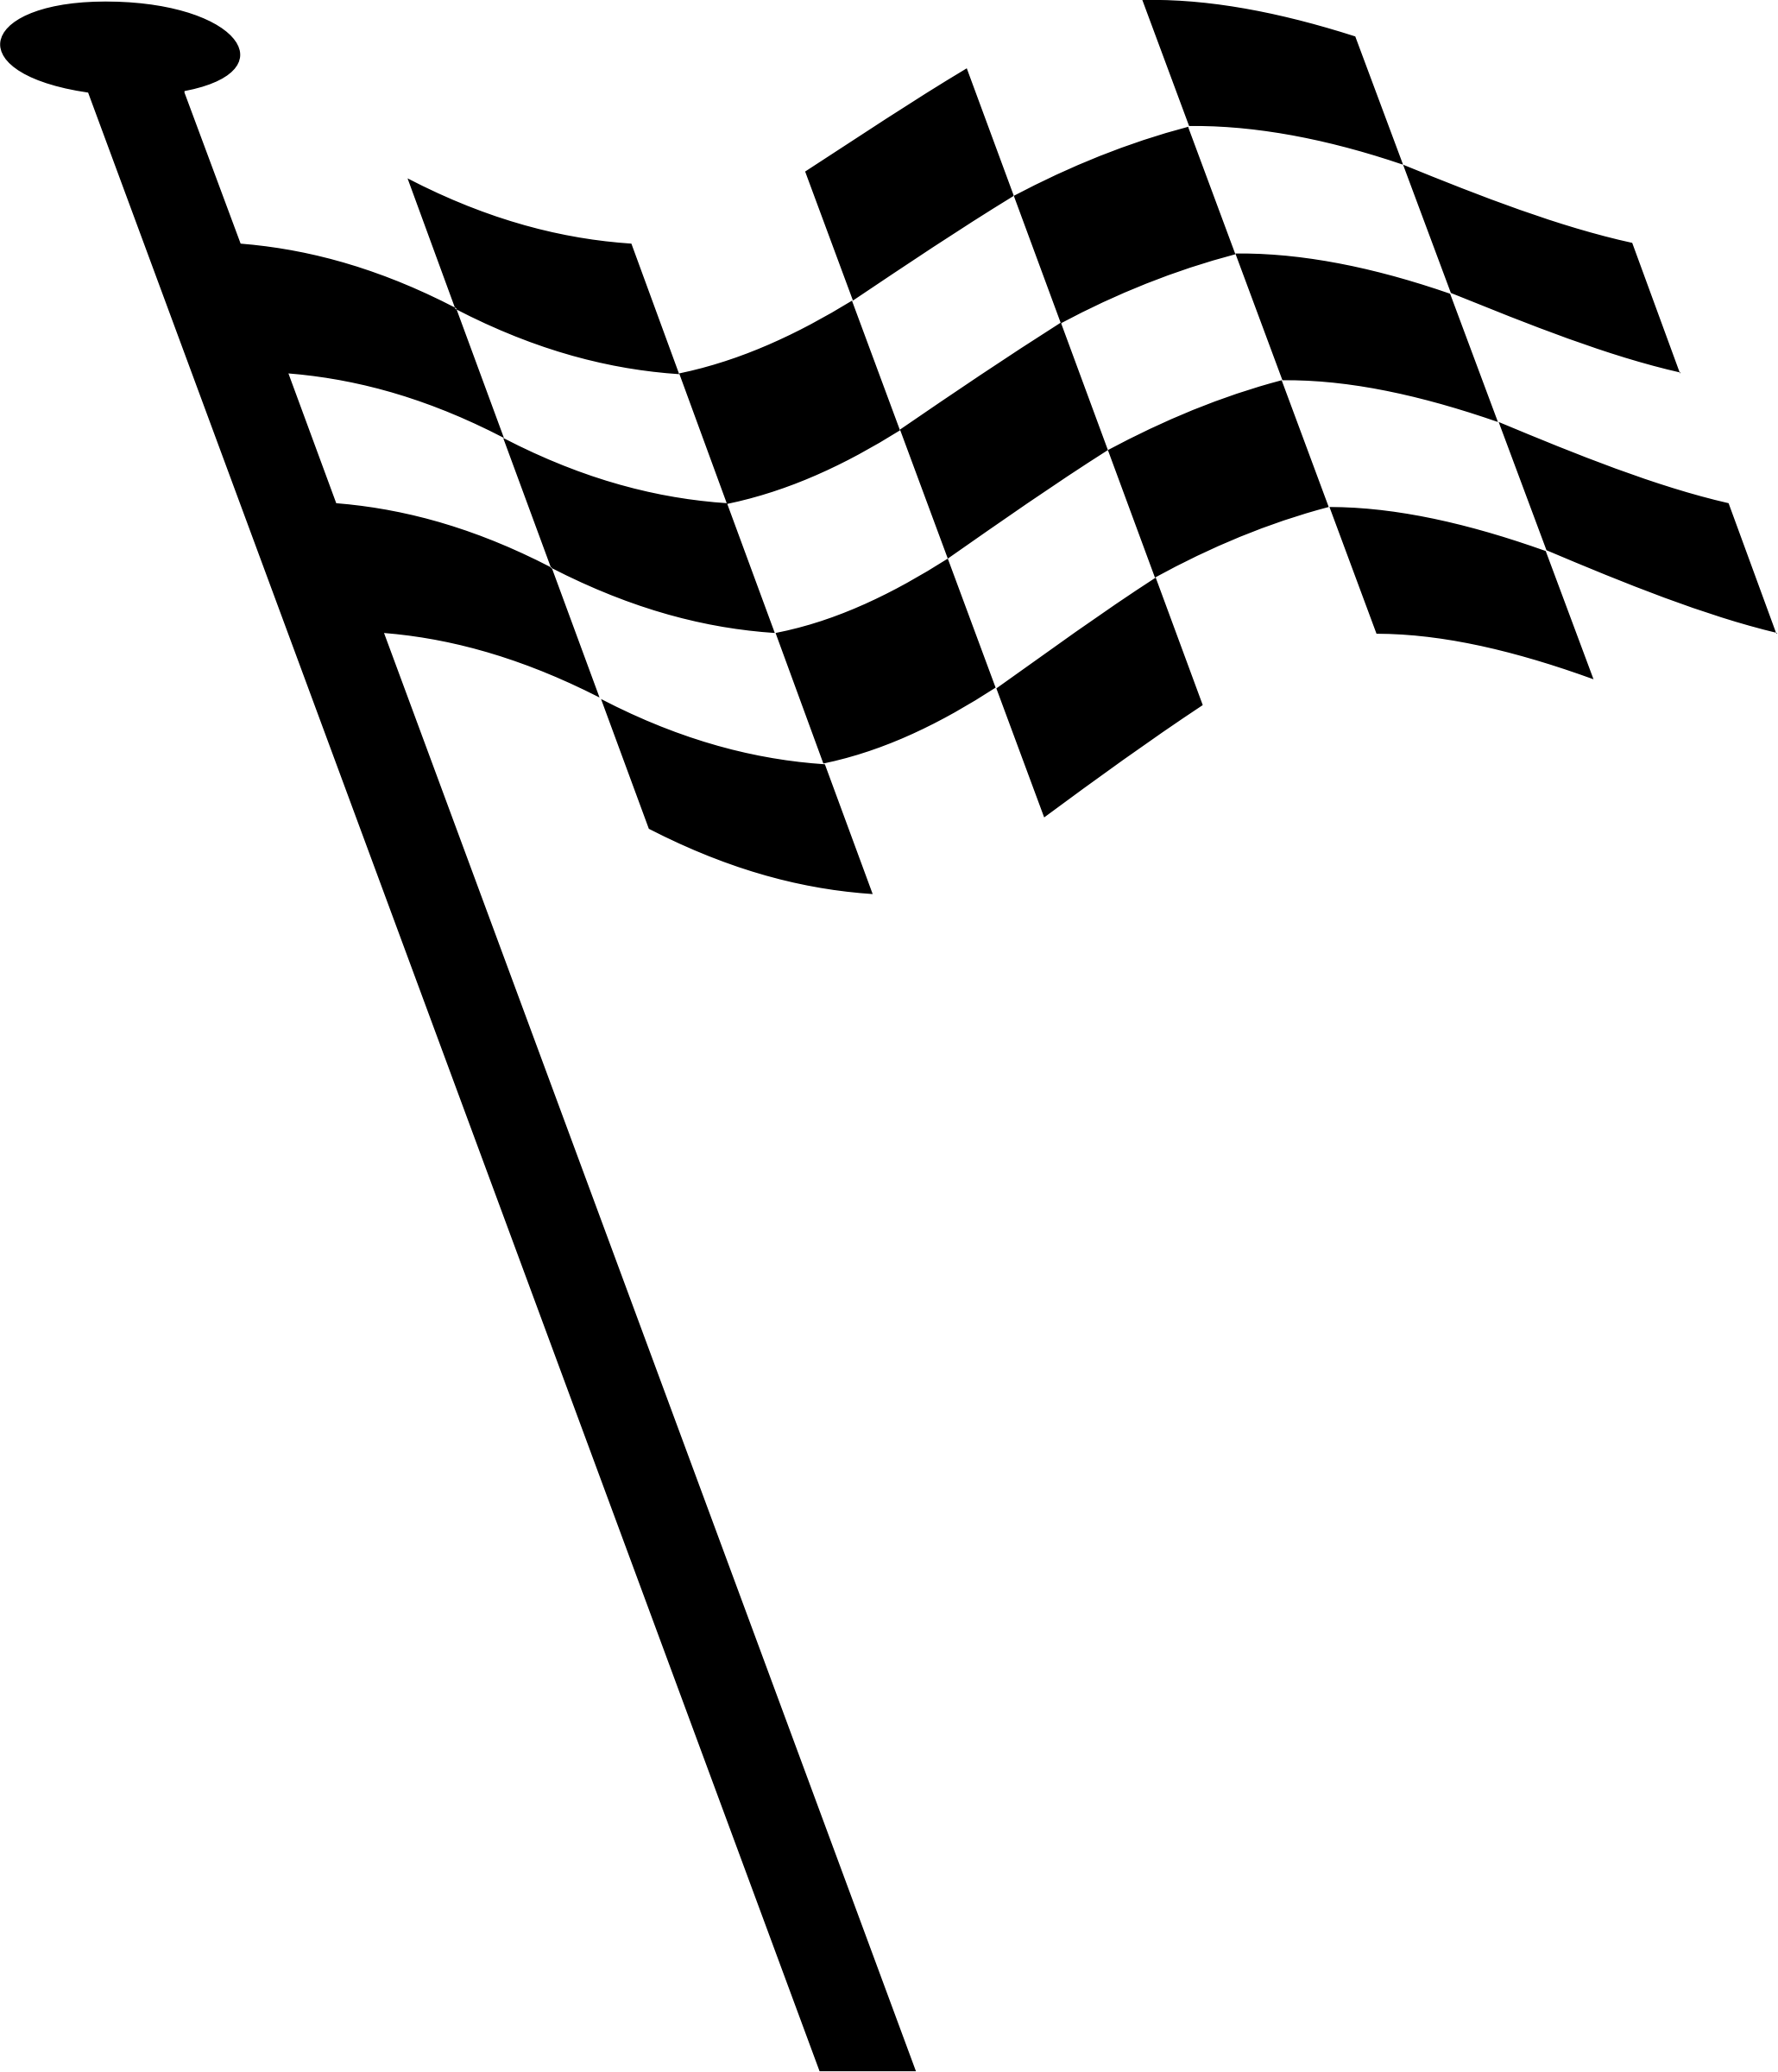 Racing Flag Stand Clipart